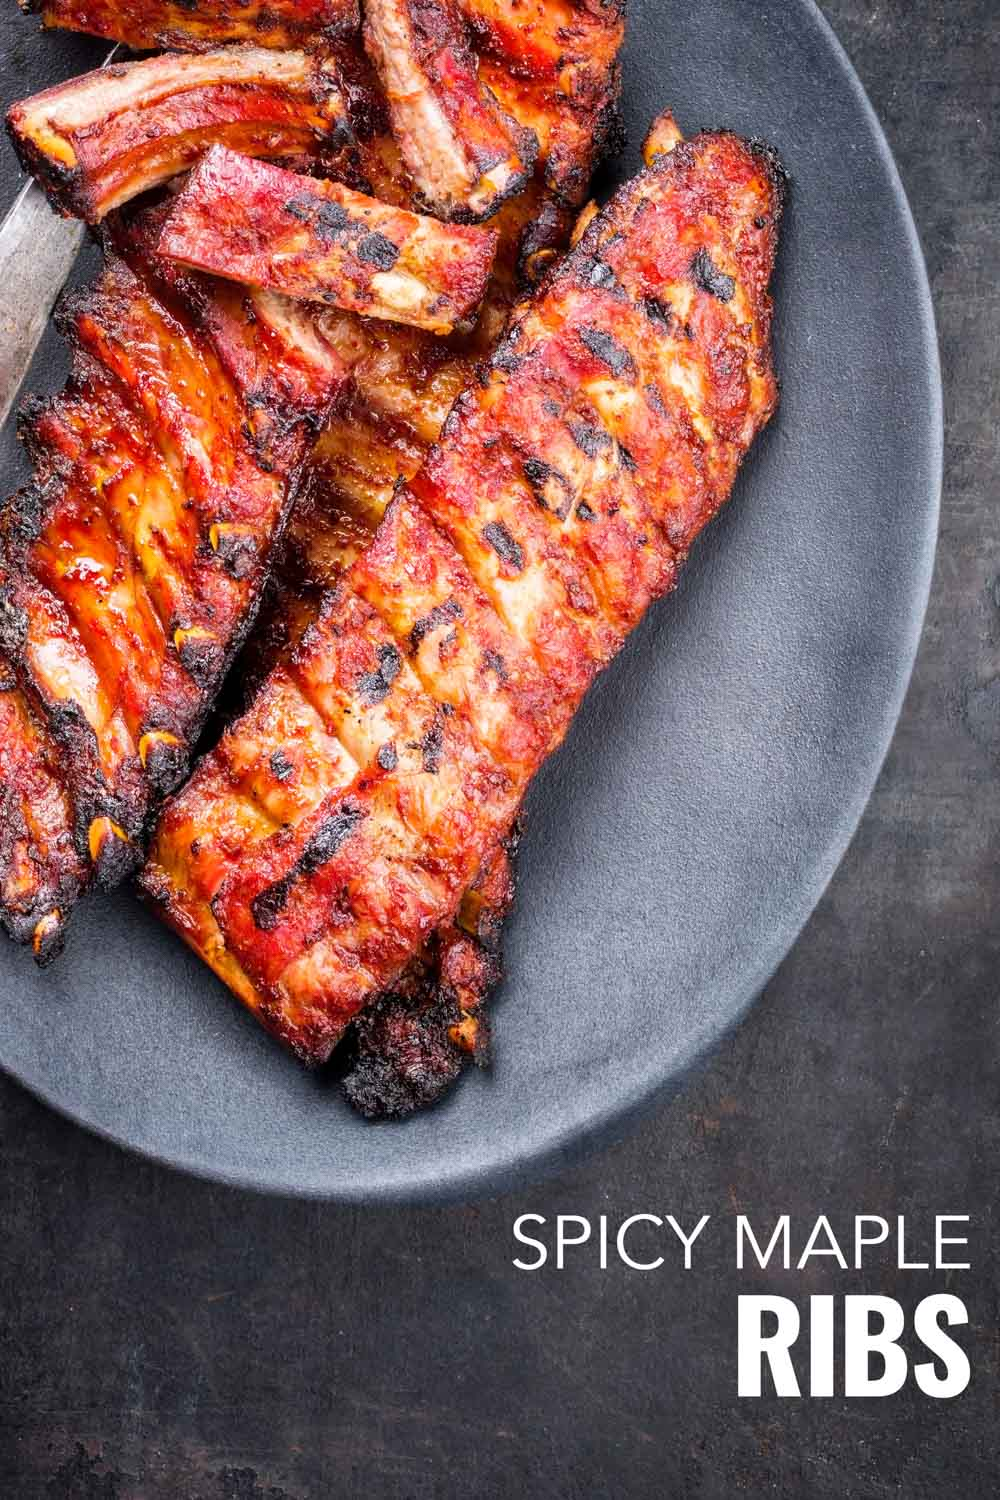 Spicy maple ribs uncut on a grey plate on a grey background.